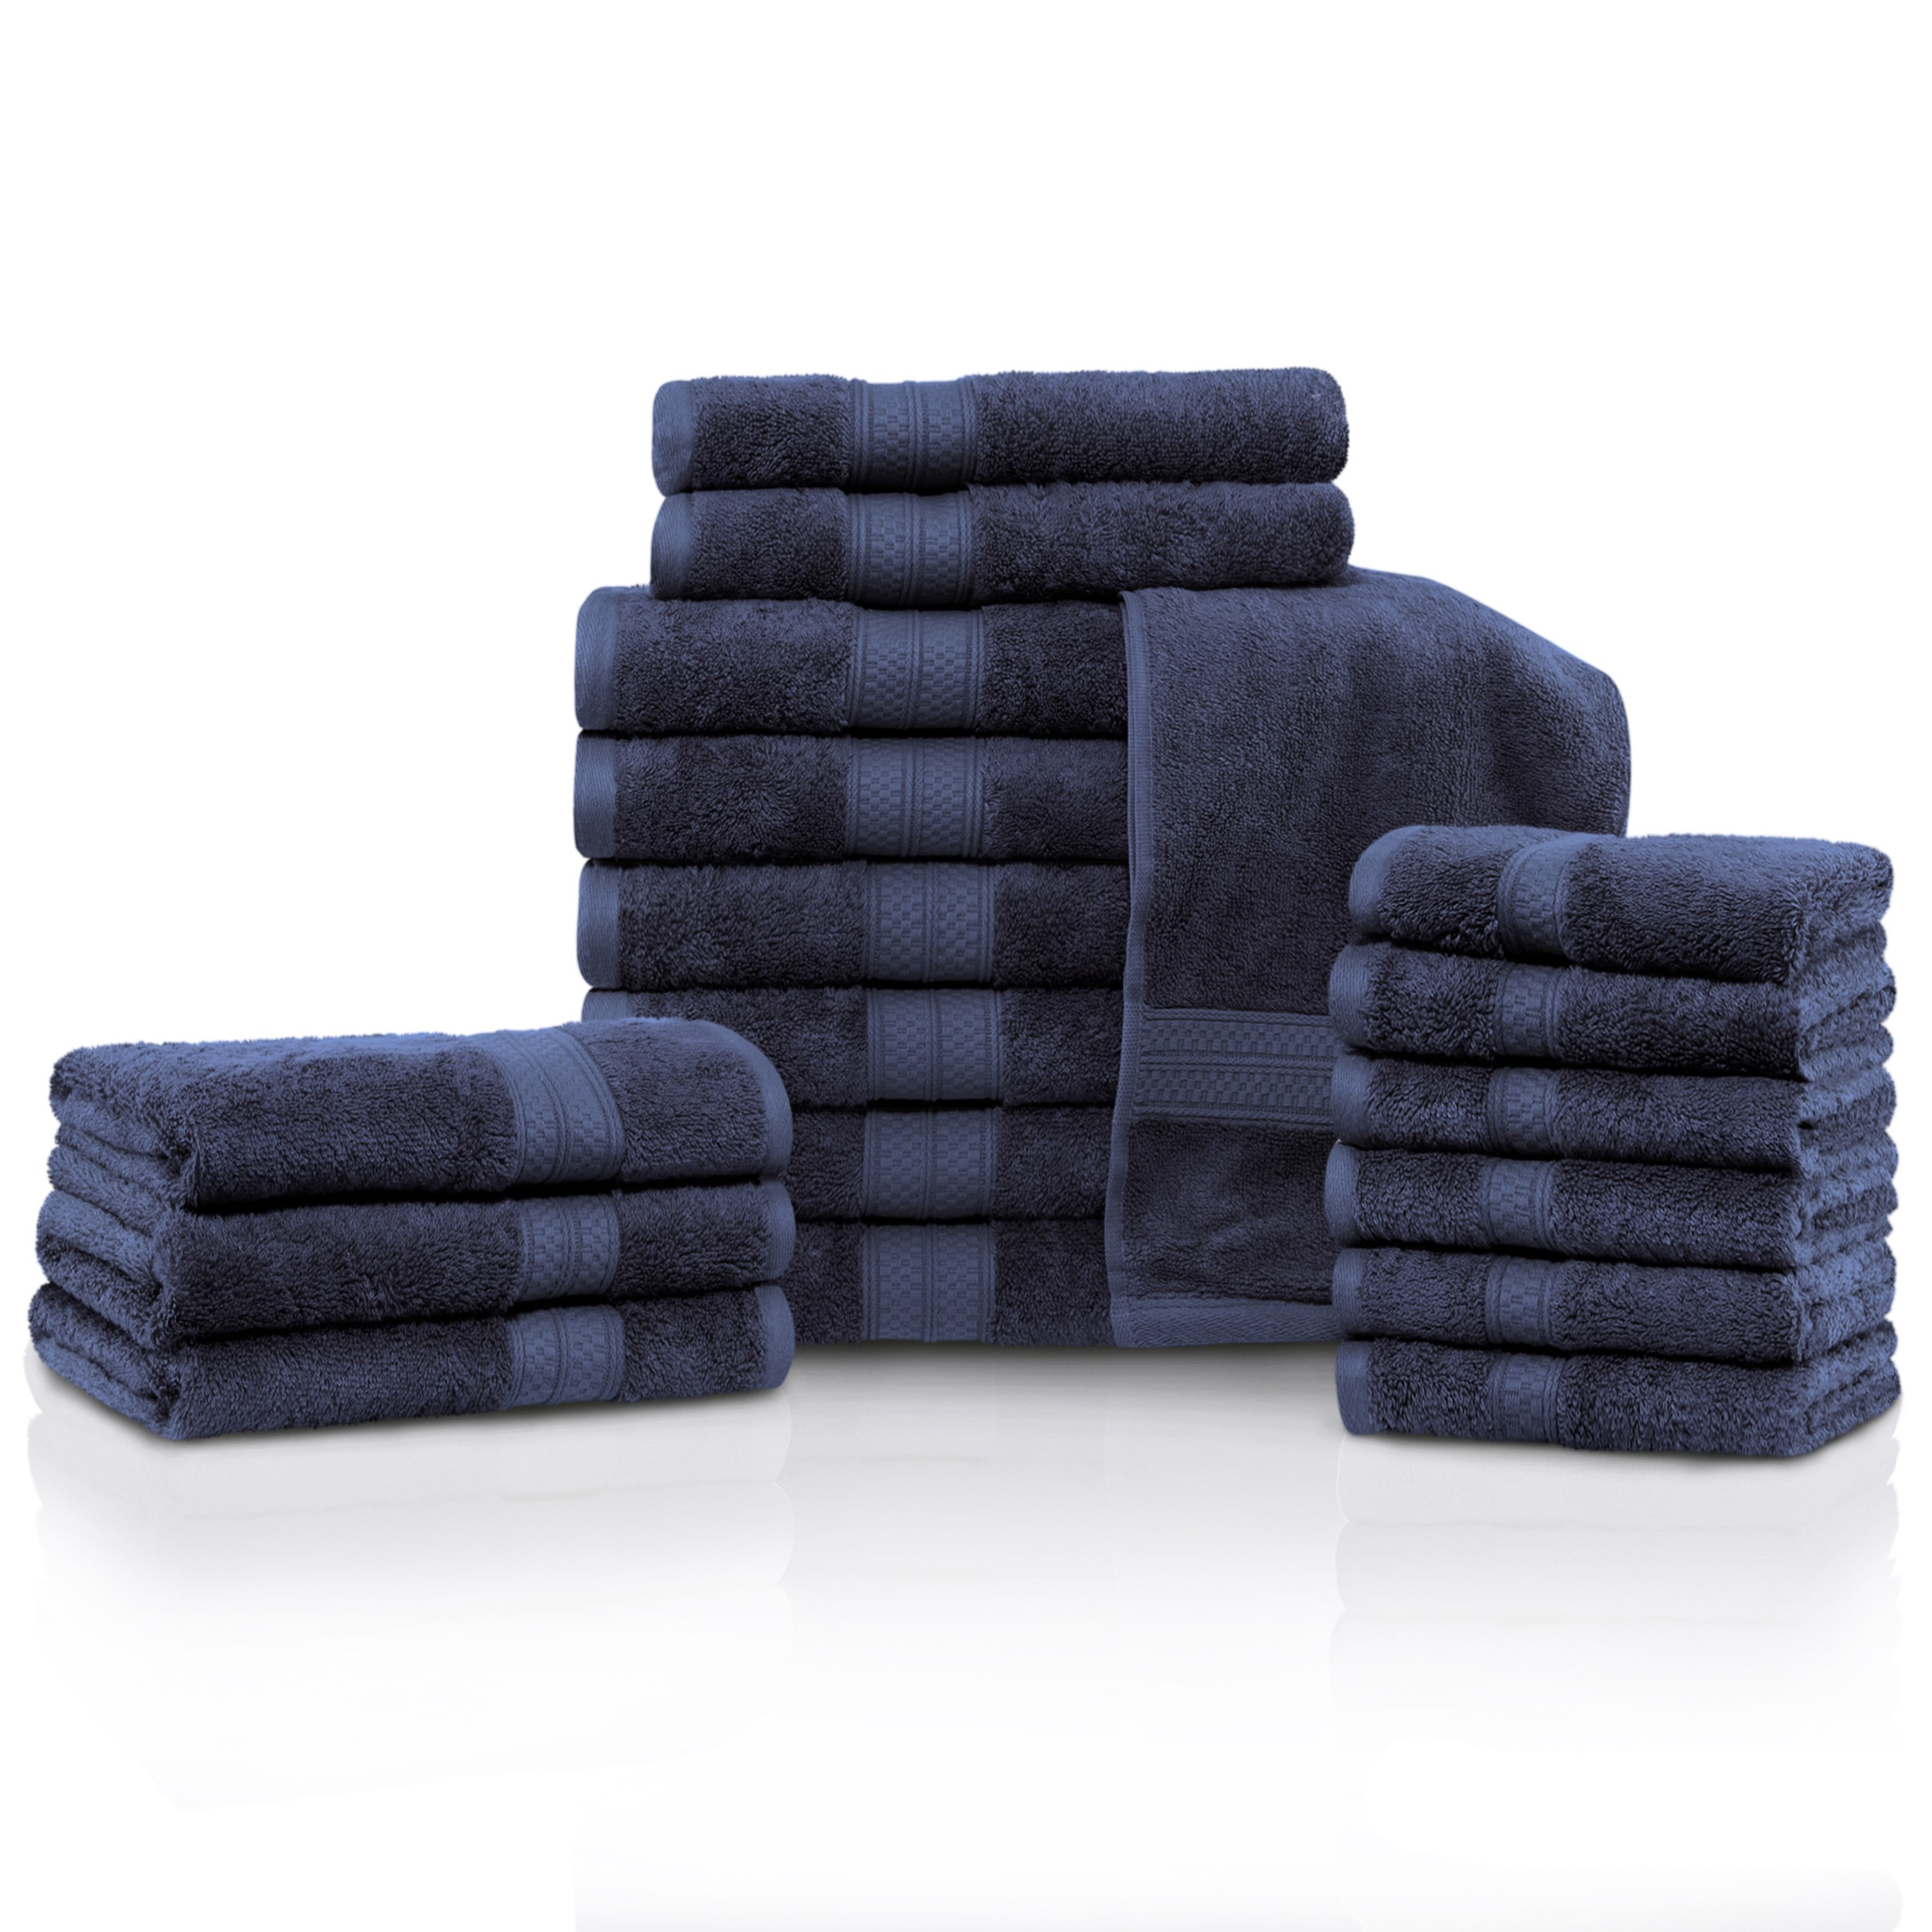 Superior Rayon From Bamboo And Cotton 18 Piece Bathroom Towel Set   On Sale    Free Shipping Today   Overstock.com   21502860